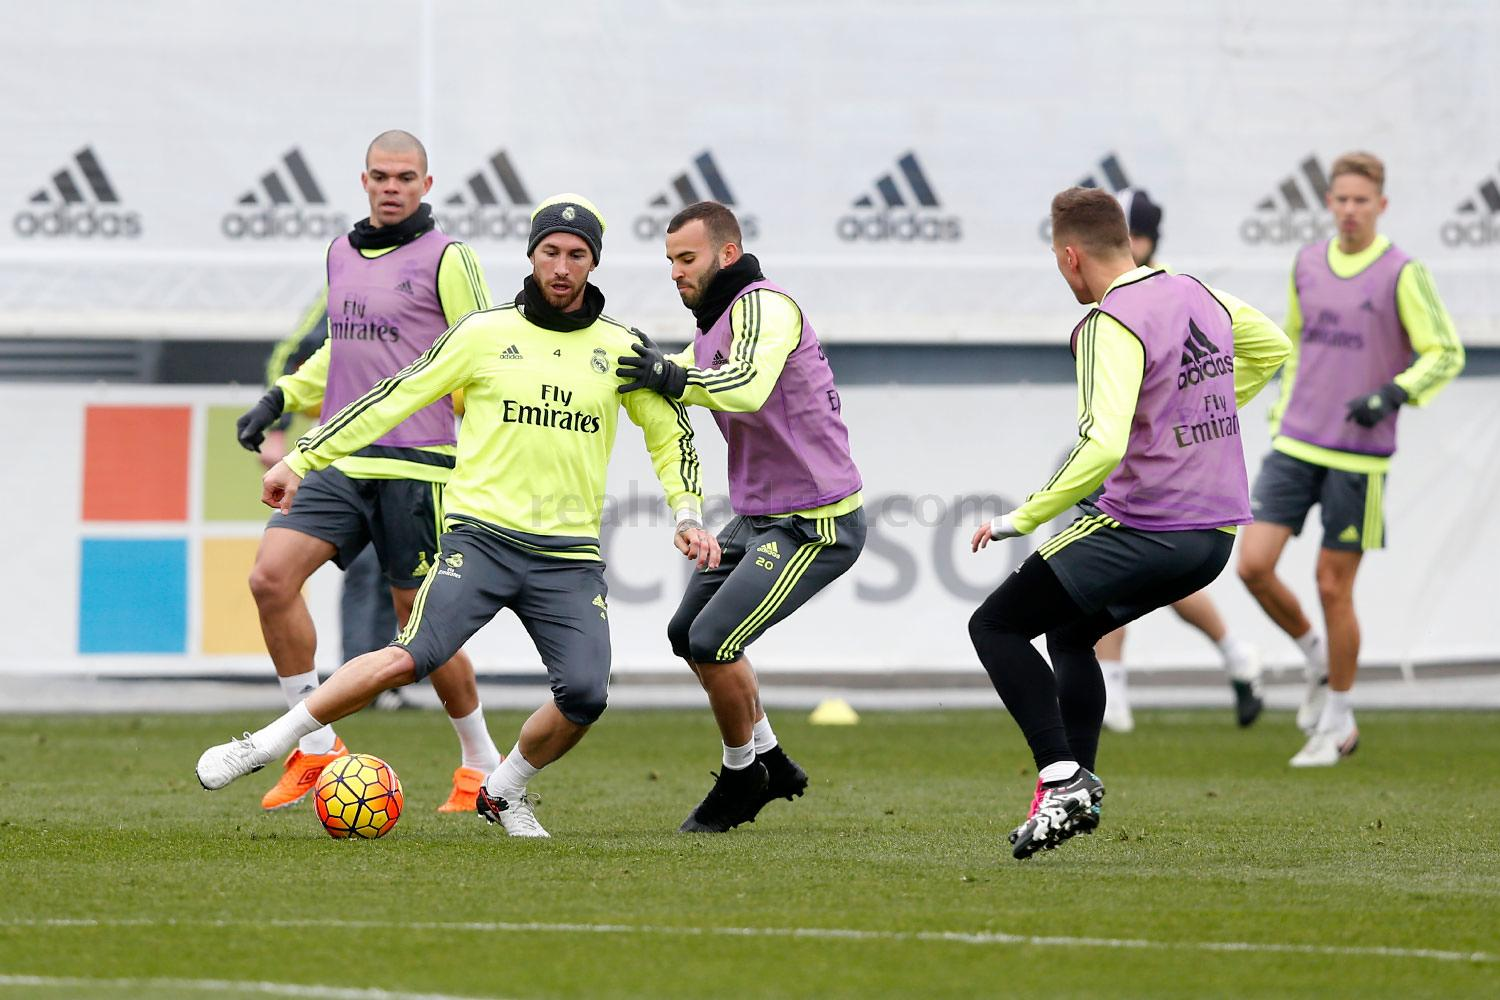 Real Madrid - Entrenamiento del Real Madrid - 21-01-2016